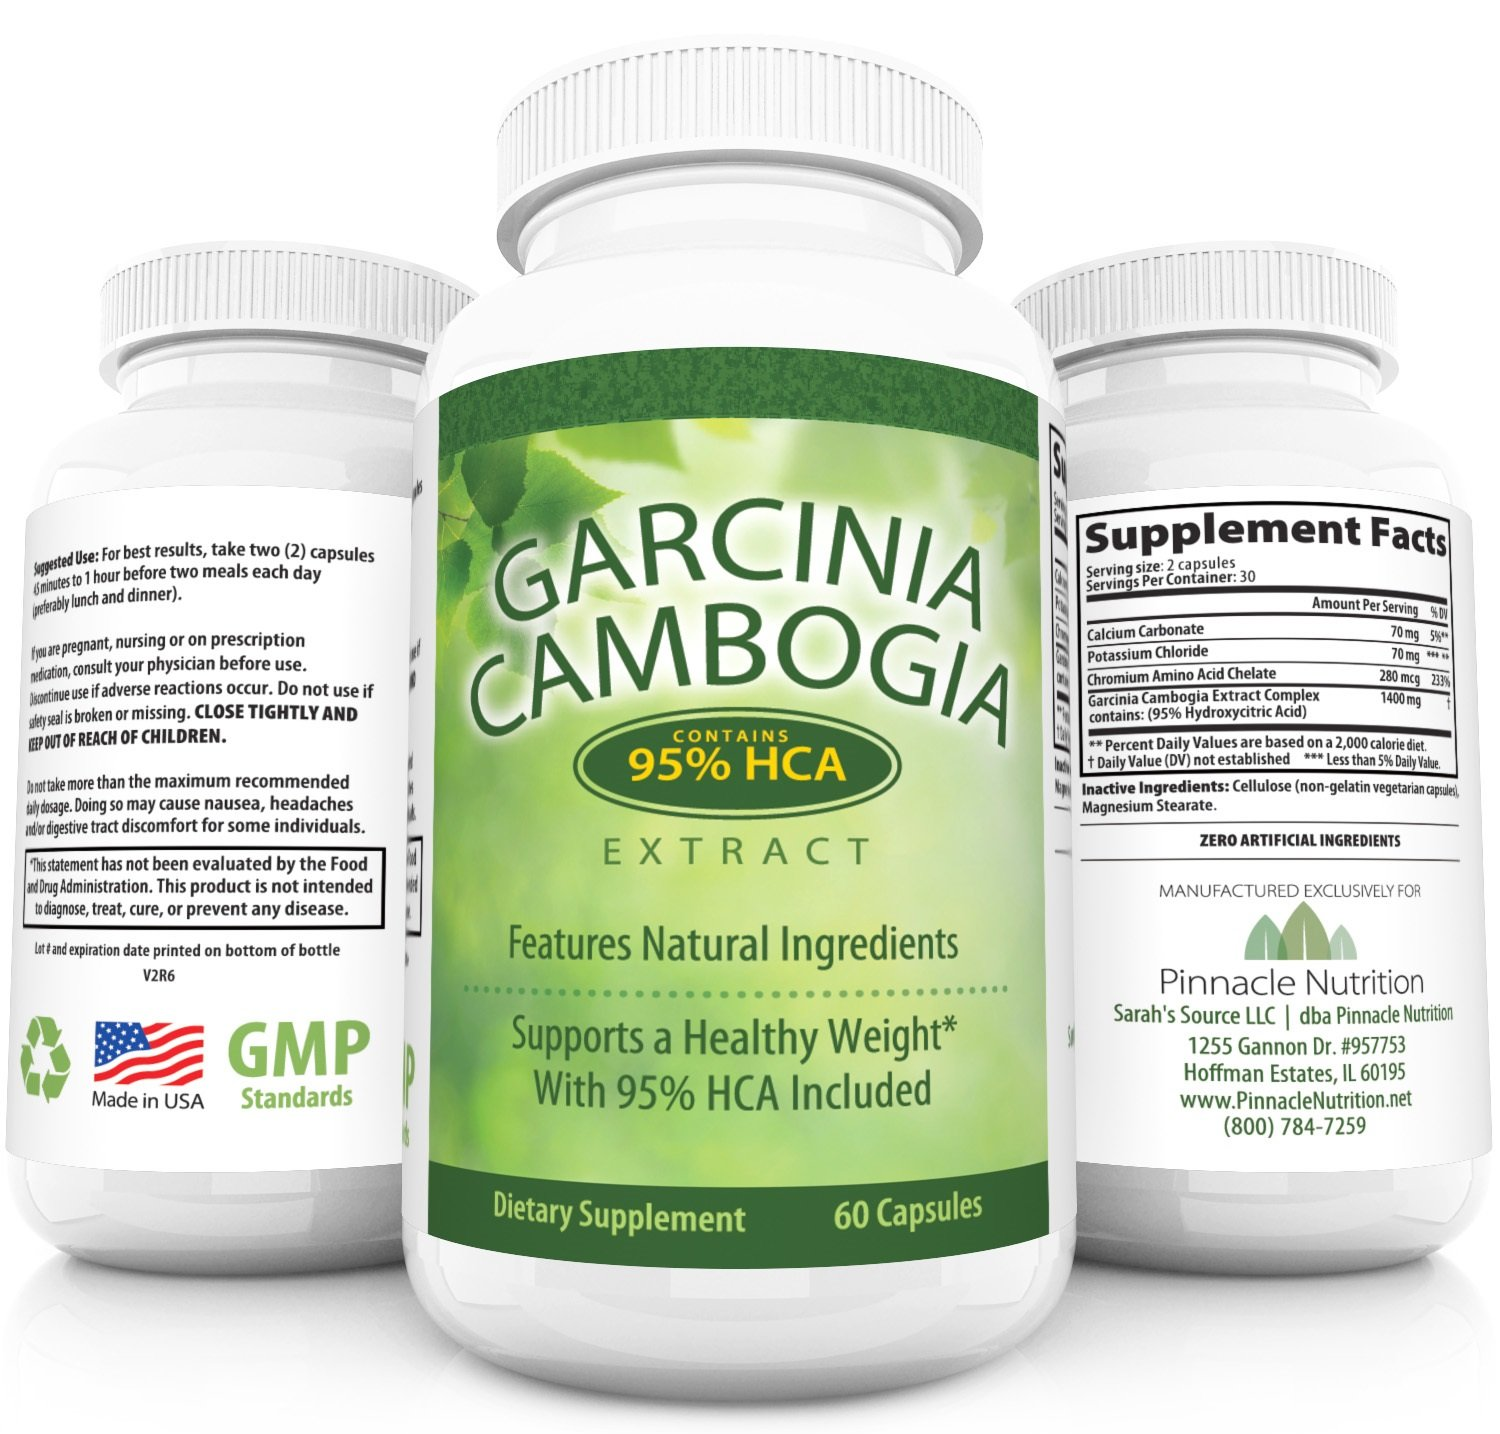 Pinnacle Nutrition 95% HCA Garcinia Cambogia Pure Extract with Potassium Weight Loss Aid - 60 Capsules